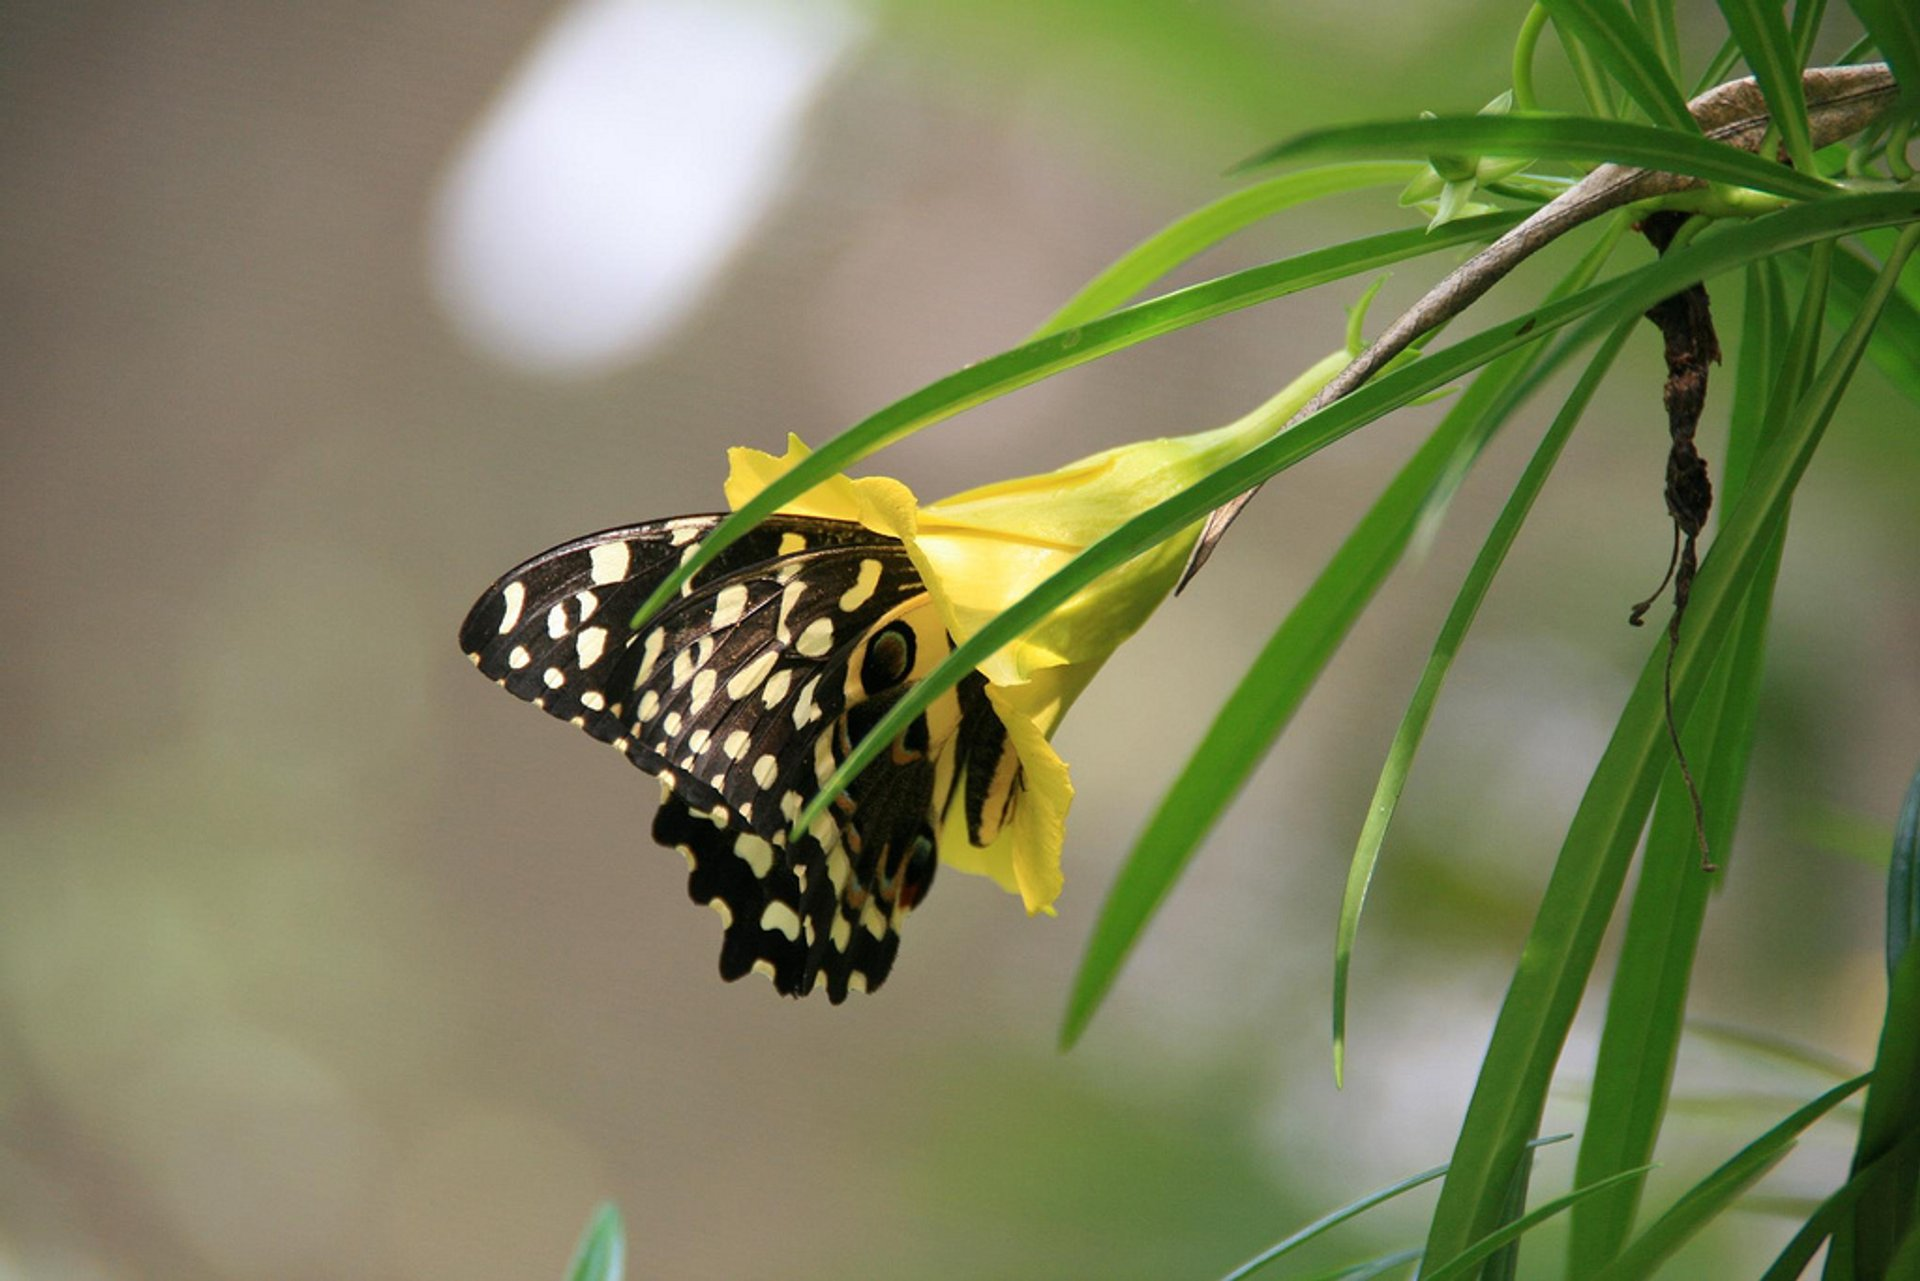 Citrus swallowtail (Papilio demodocus) in the Jozani Forest 2020